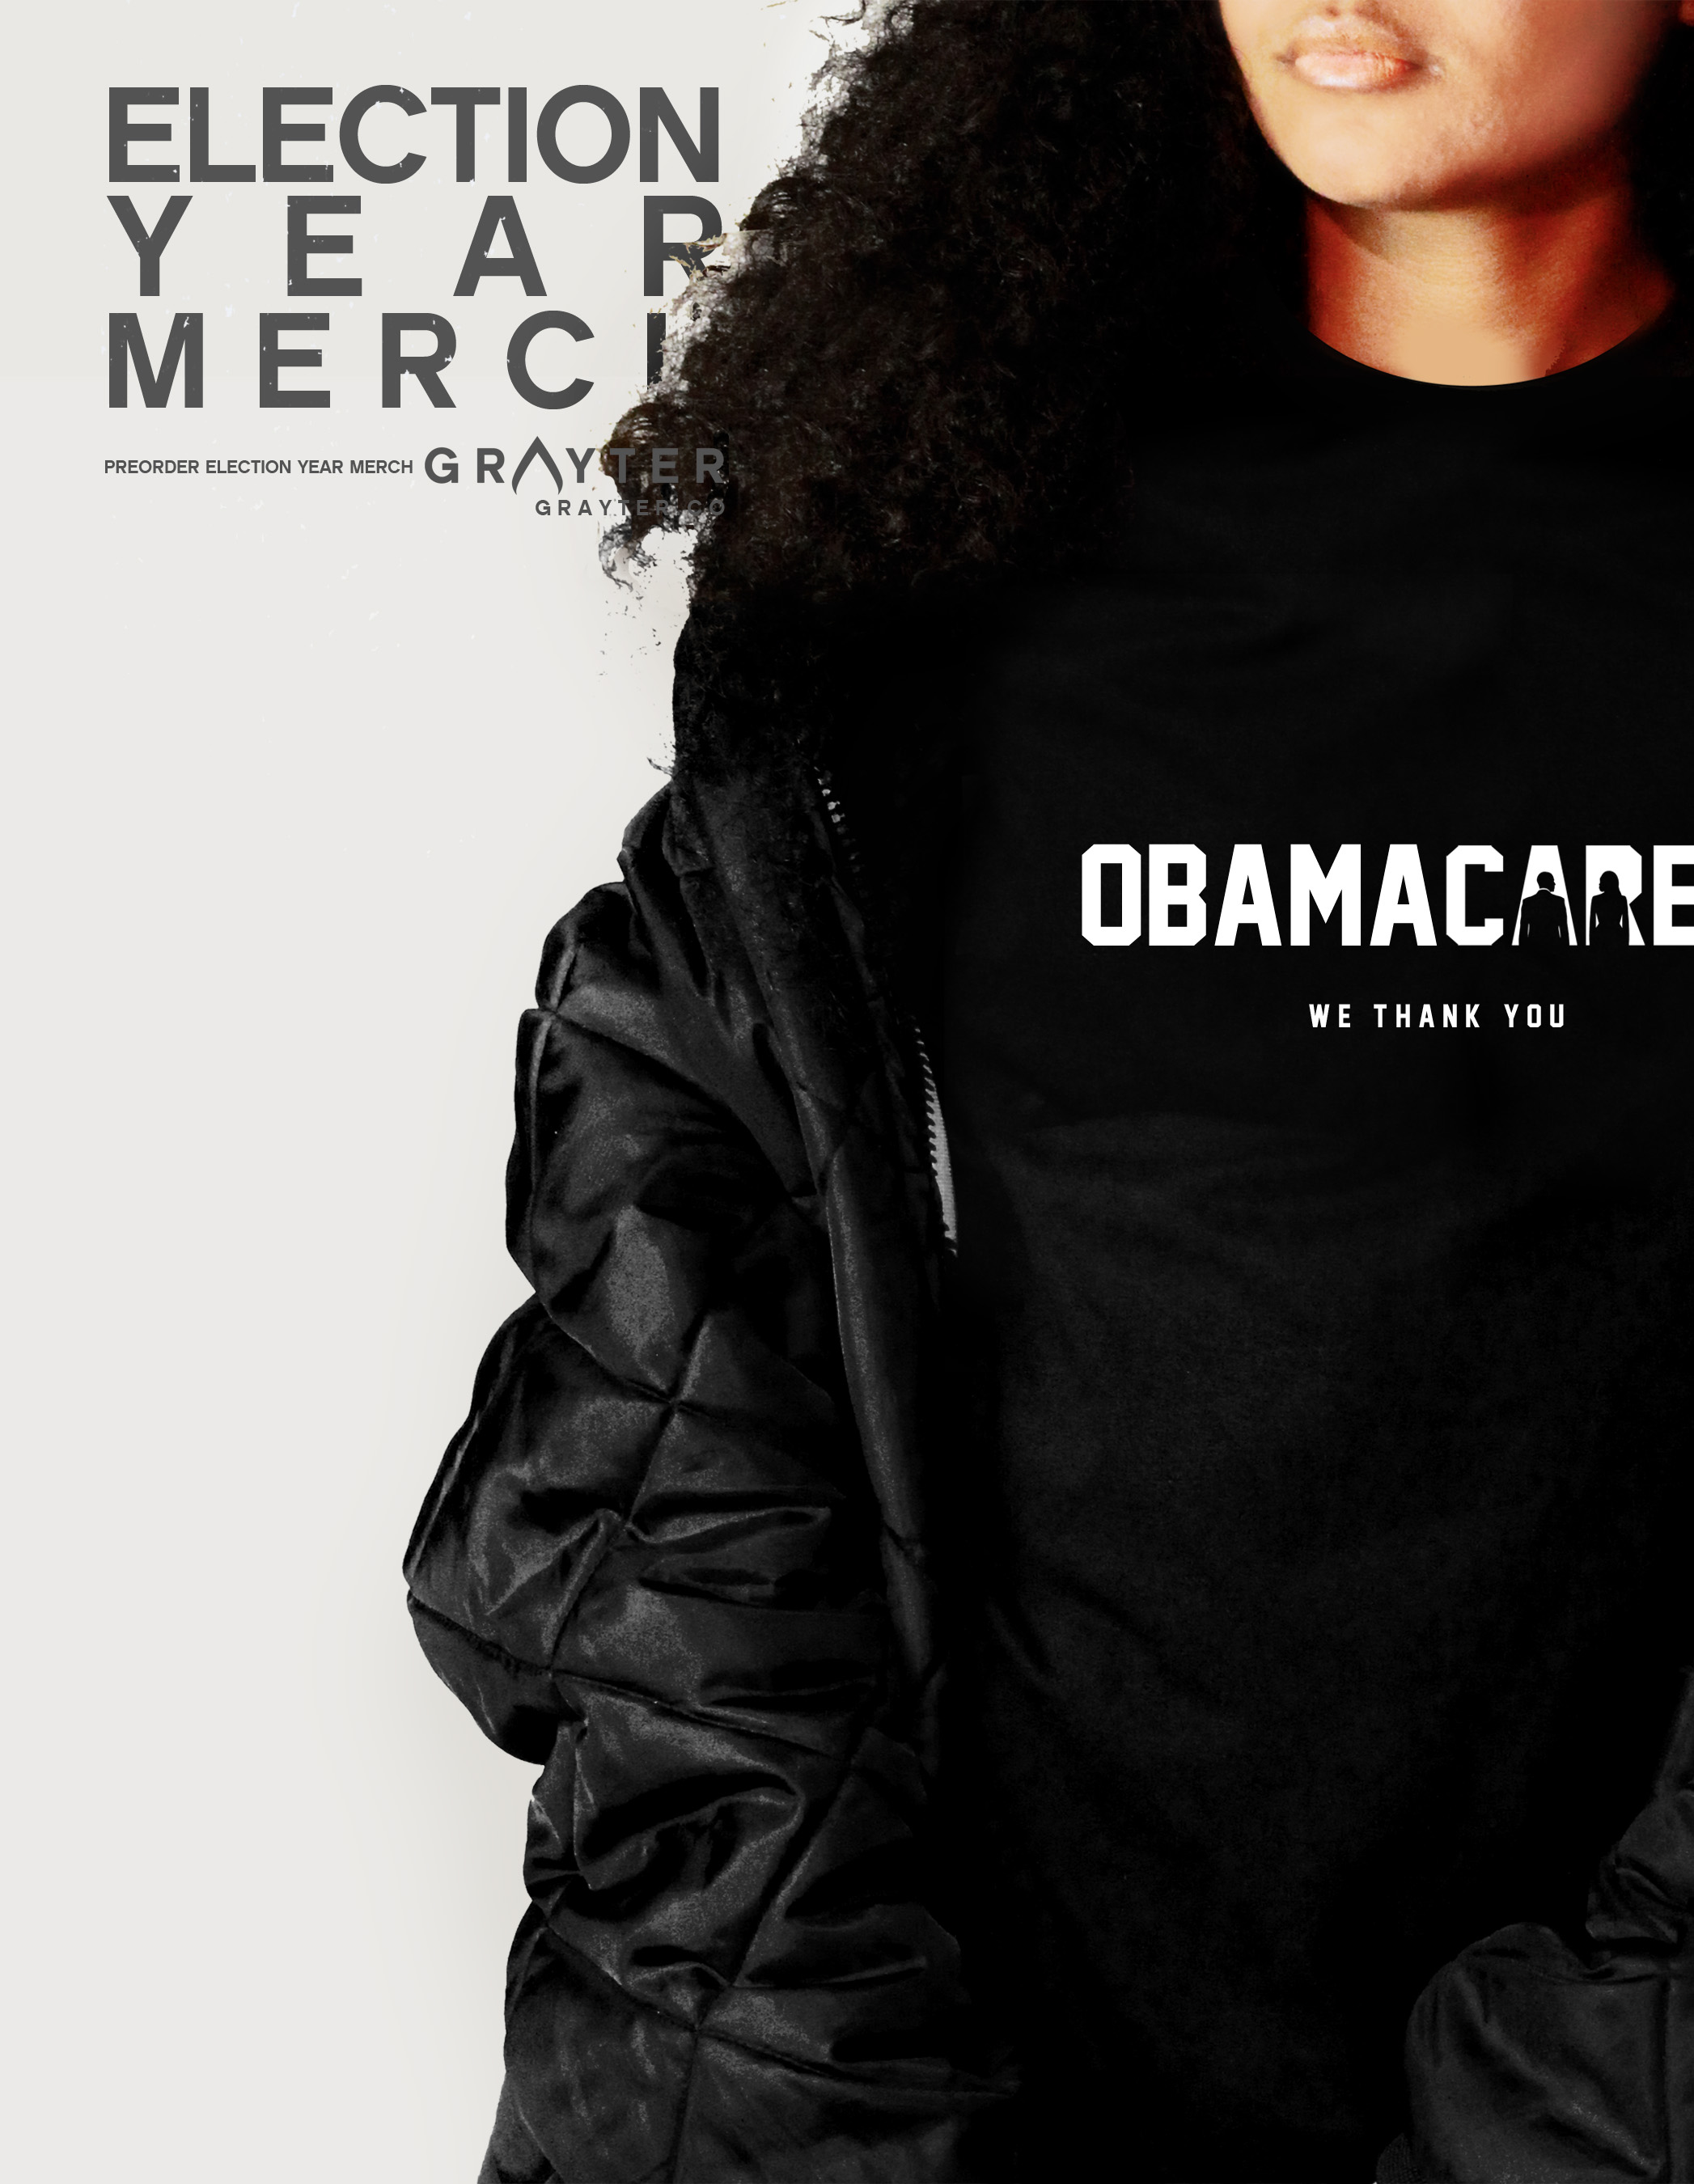 GRAYTER Store & Merch Launch: 3 Things to Know About the #Obamacared Shirt